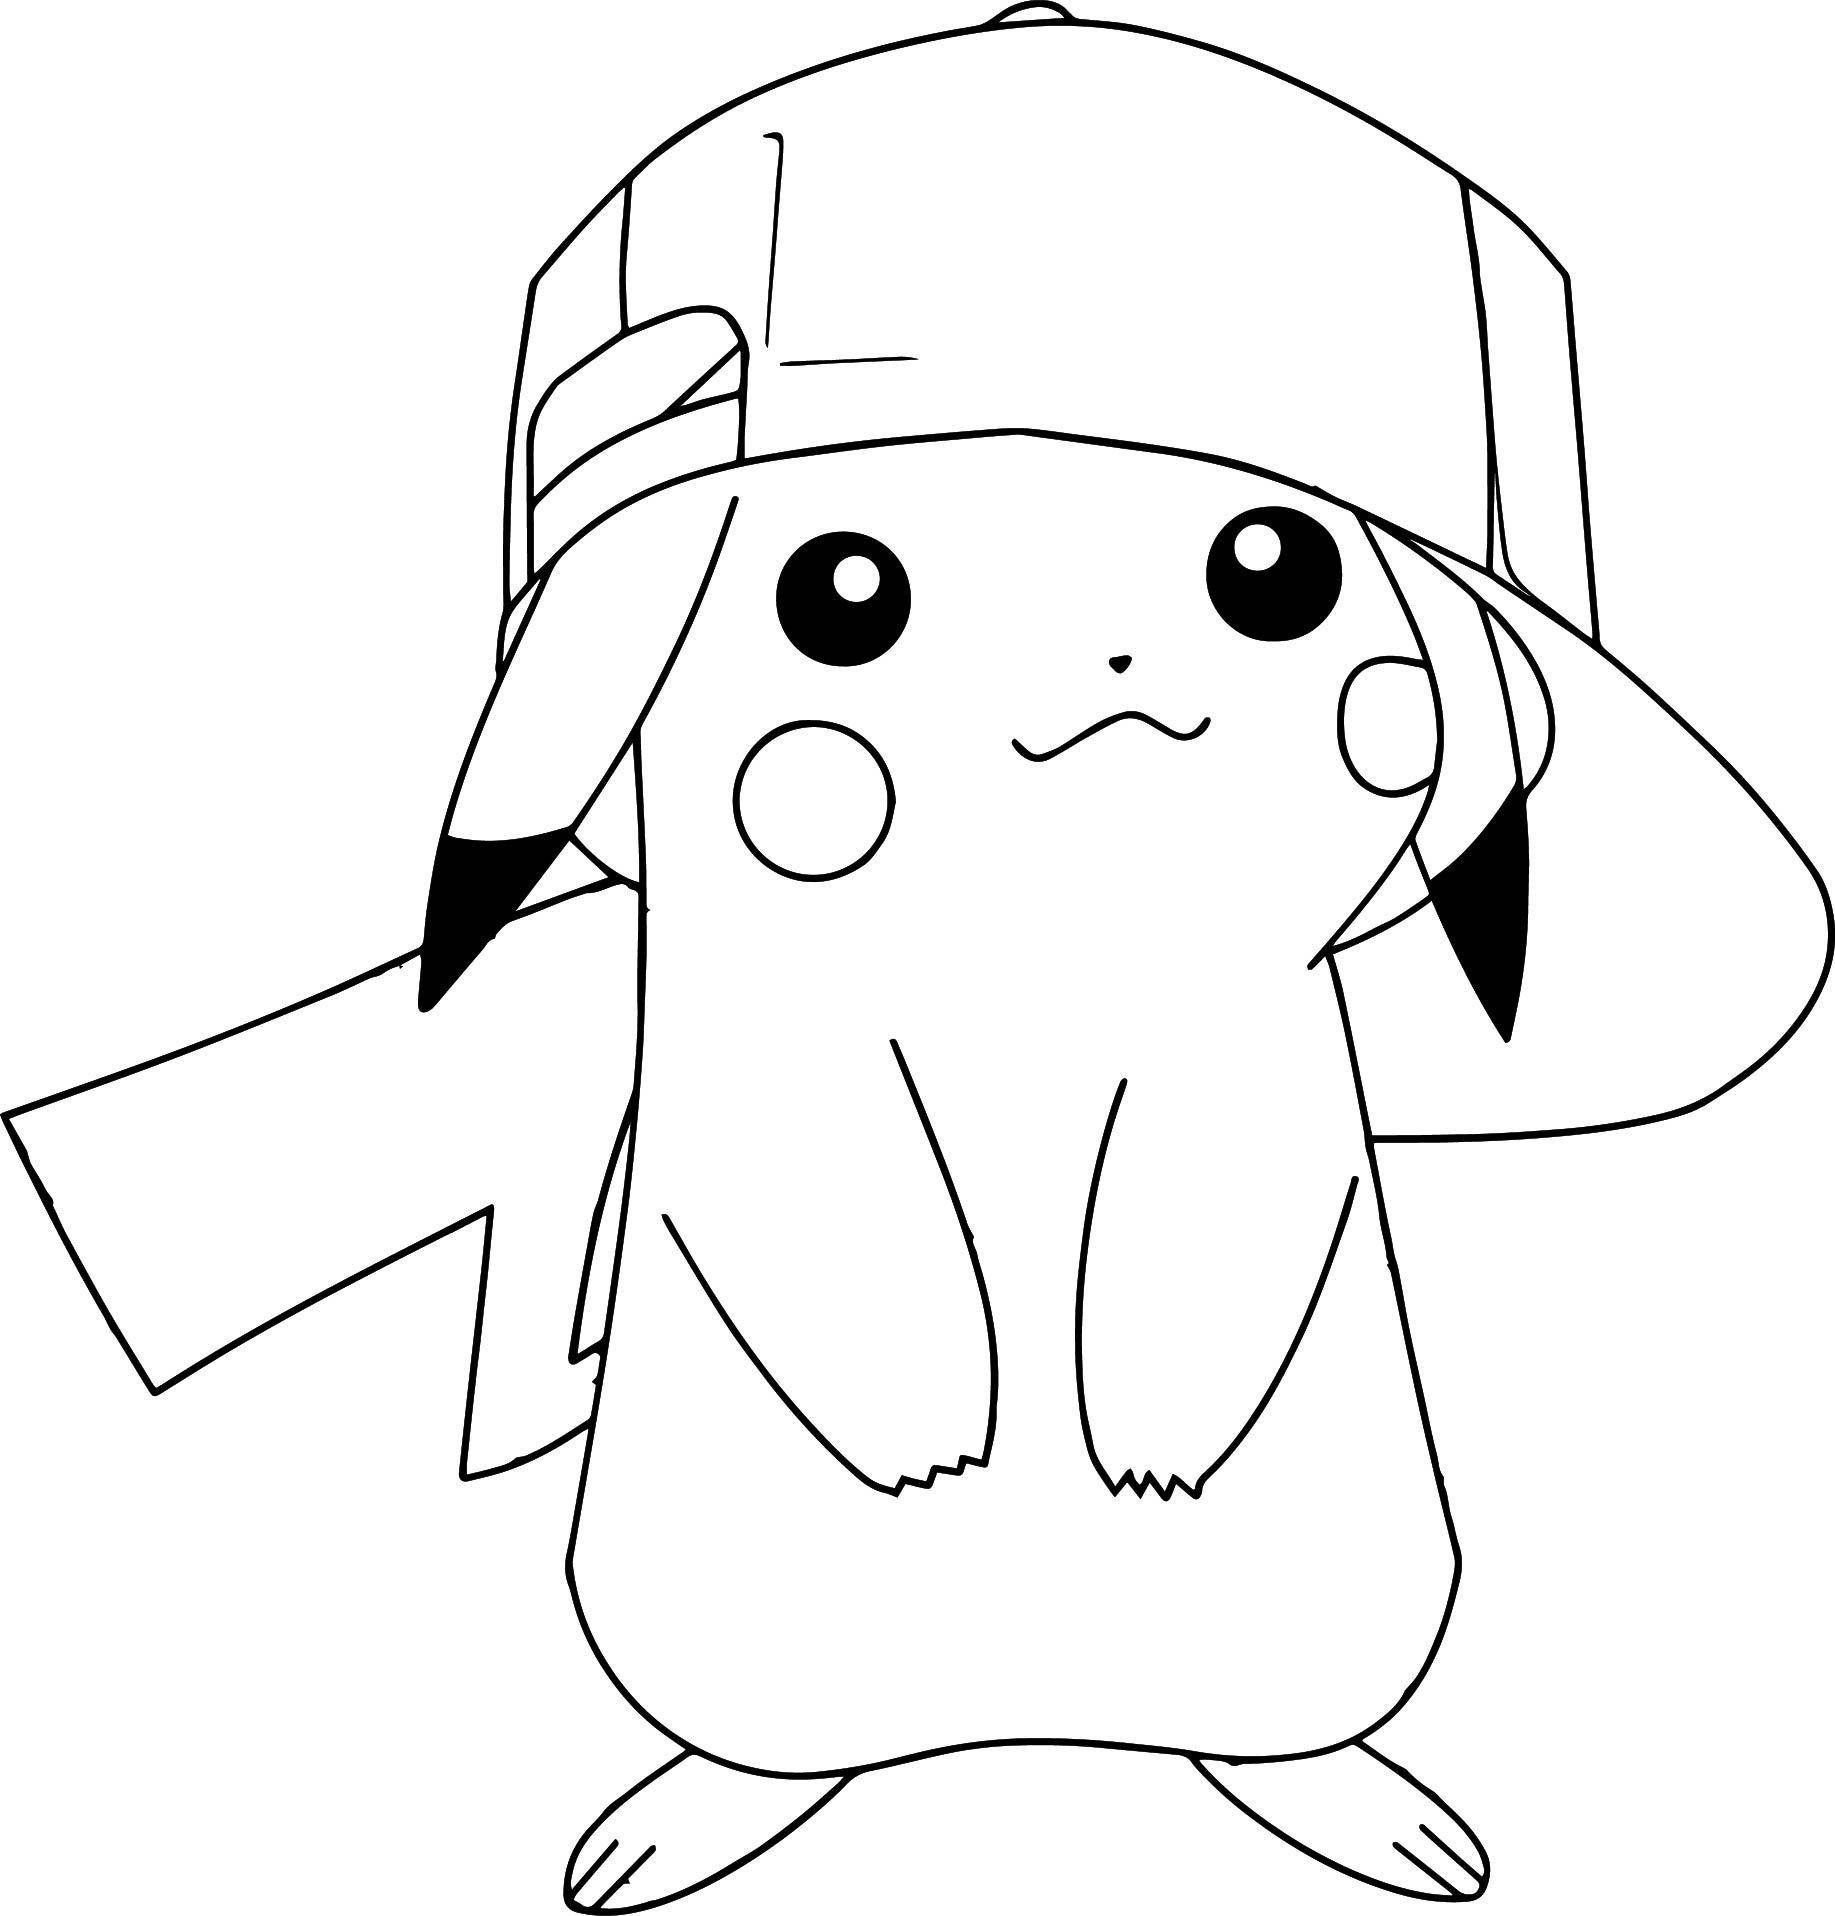 Kawaii Pokemon Coloring Pages Pikachu Coloring Page Cartoon